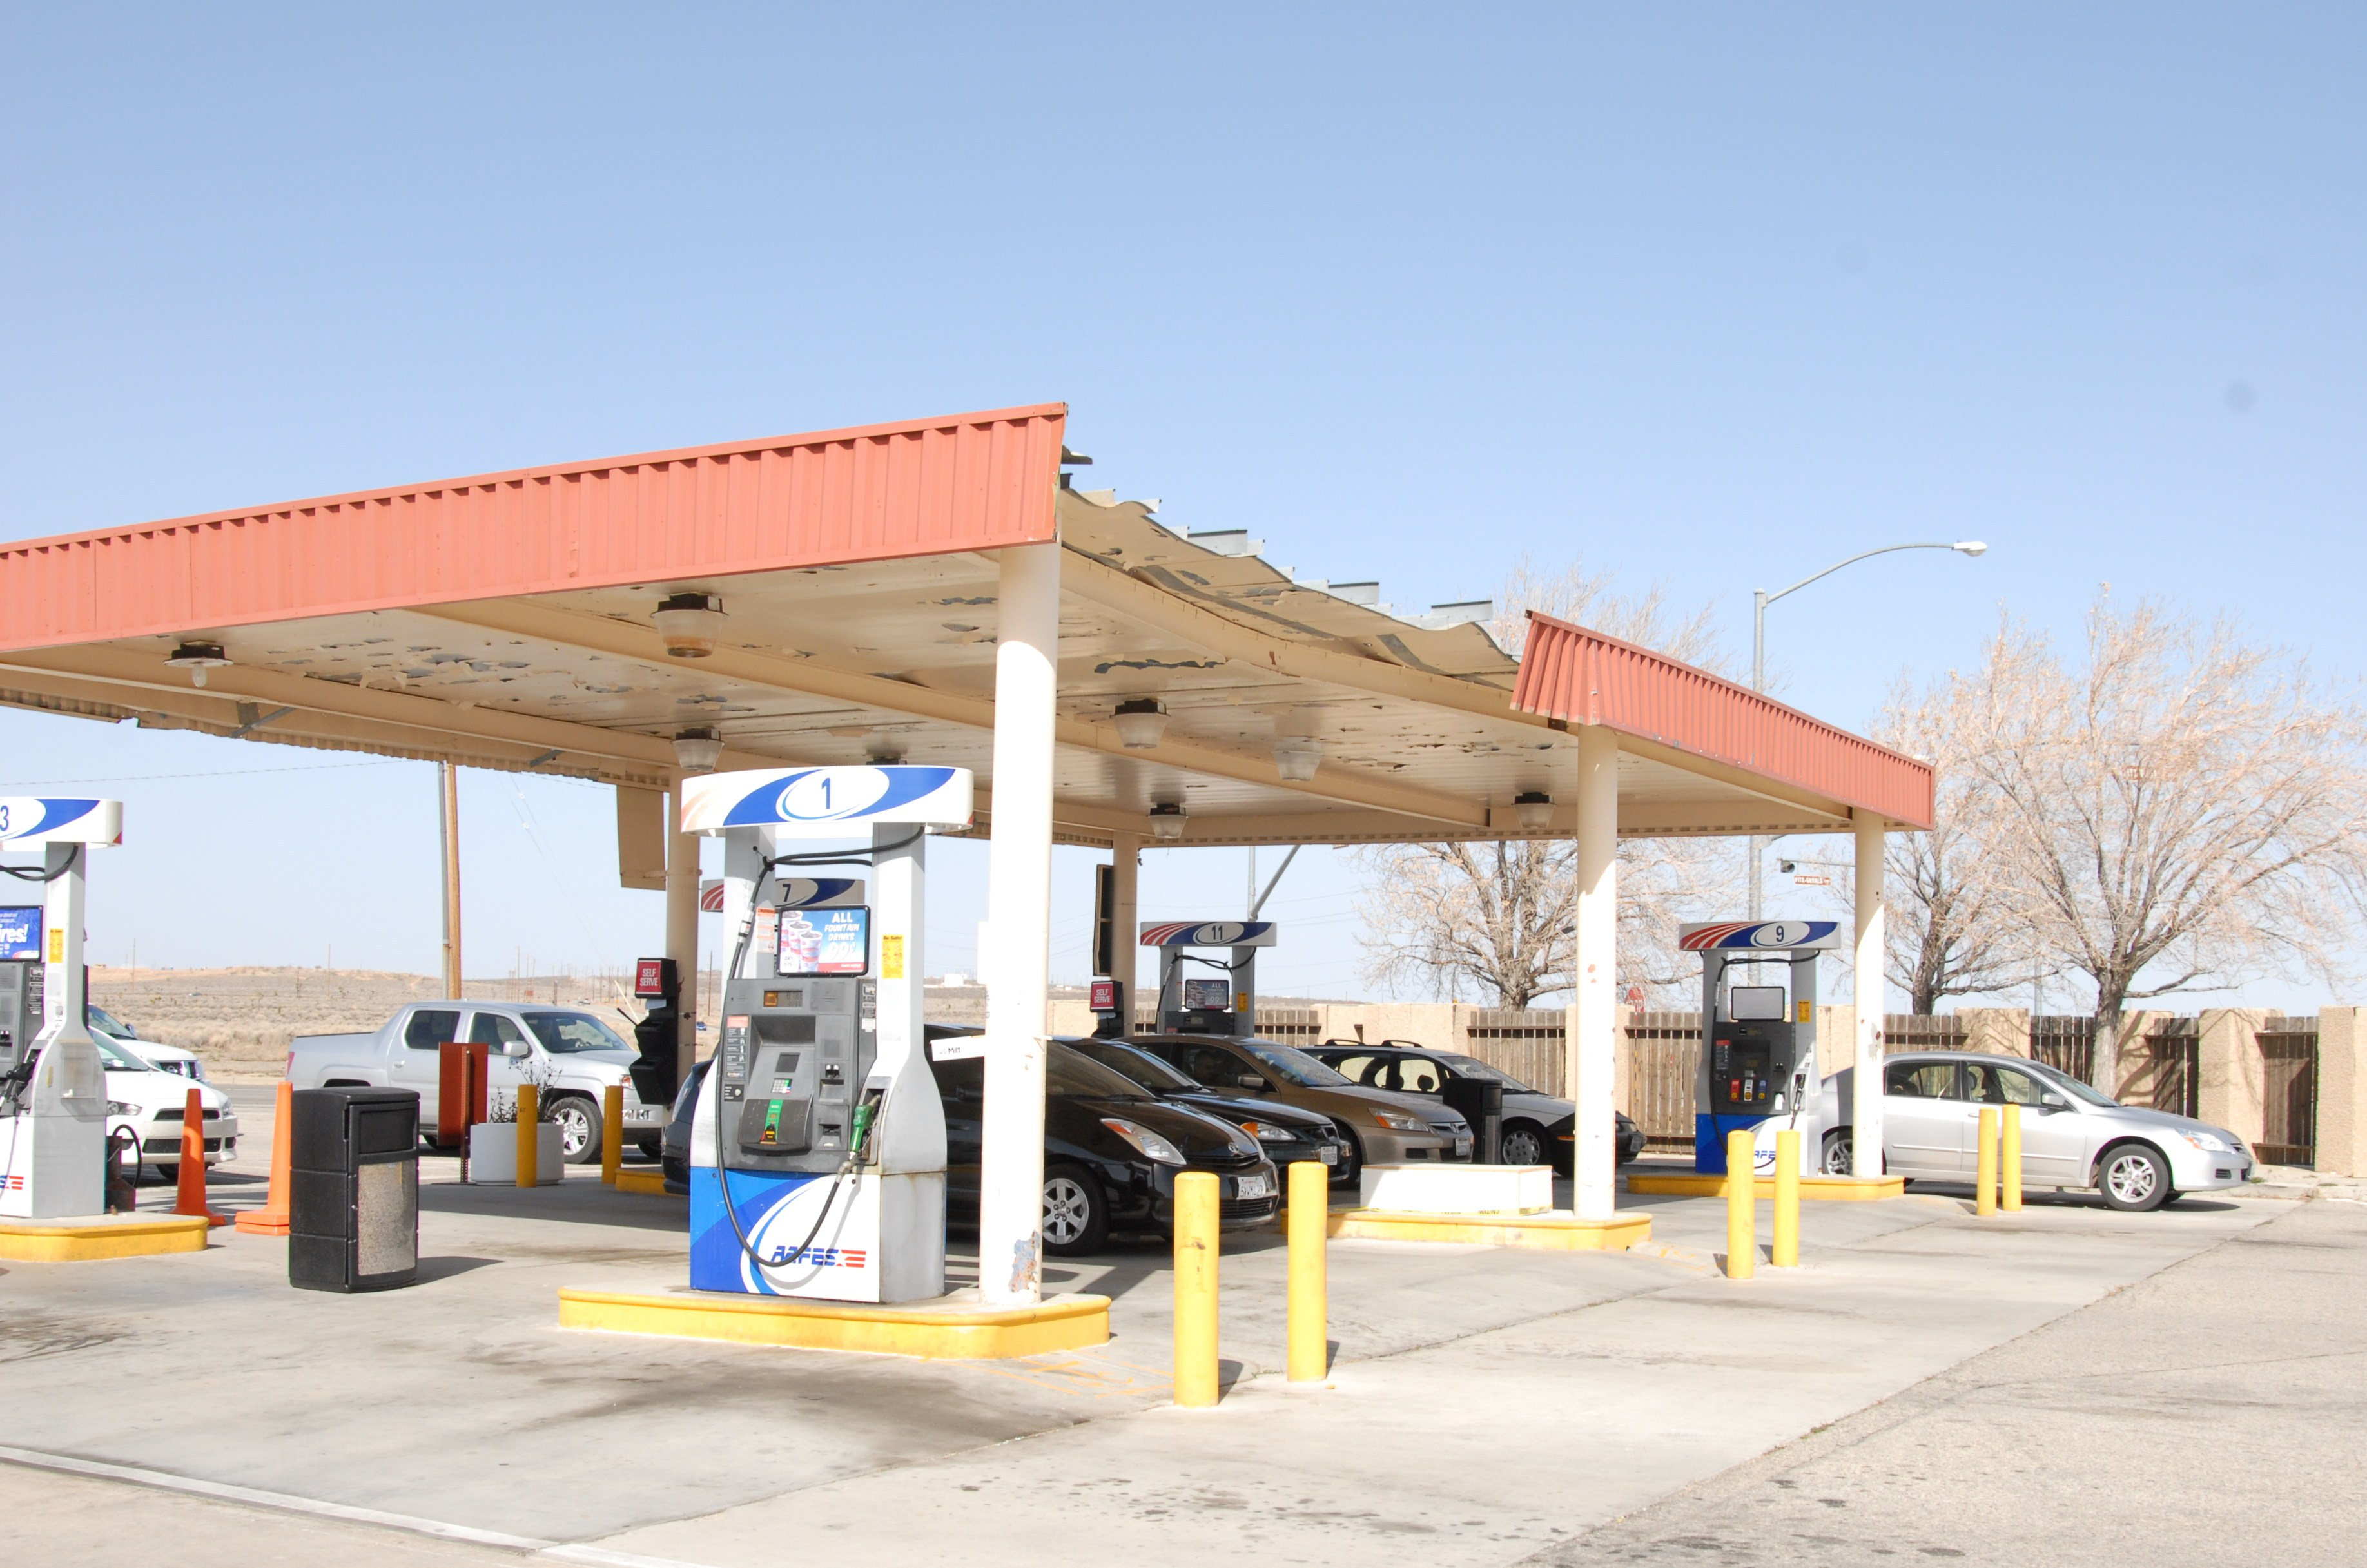 AAFES gas station to get new canopy : canopy for gas station - memphite.com